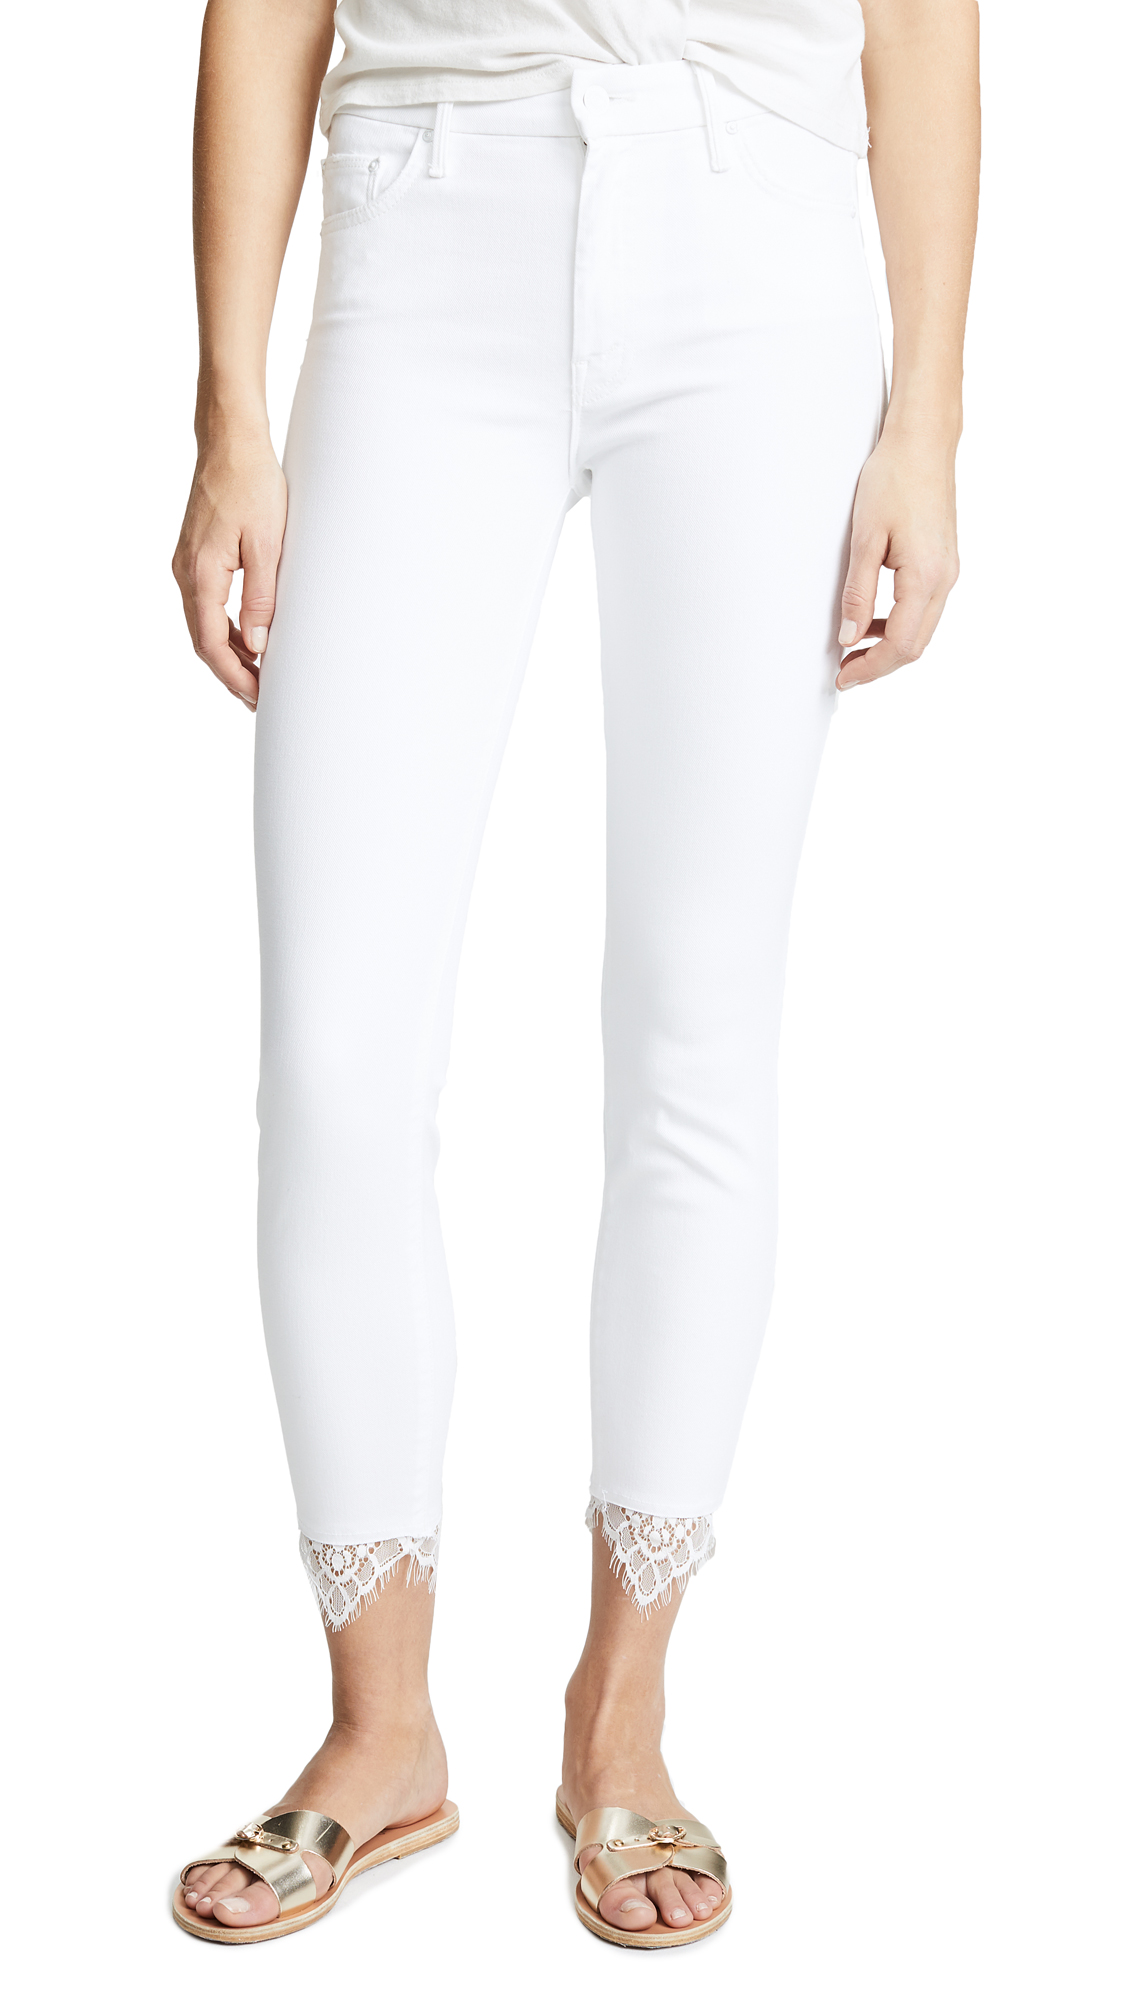 MOTHER The Looker Dagger Jeans with Lace In Glass Slipper